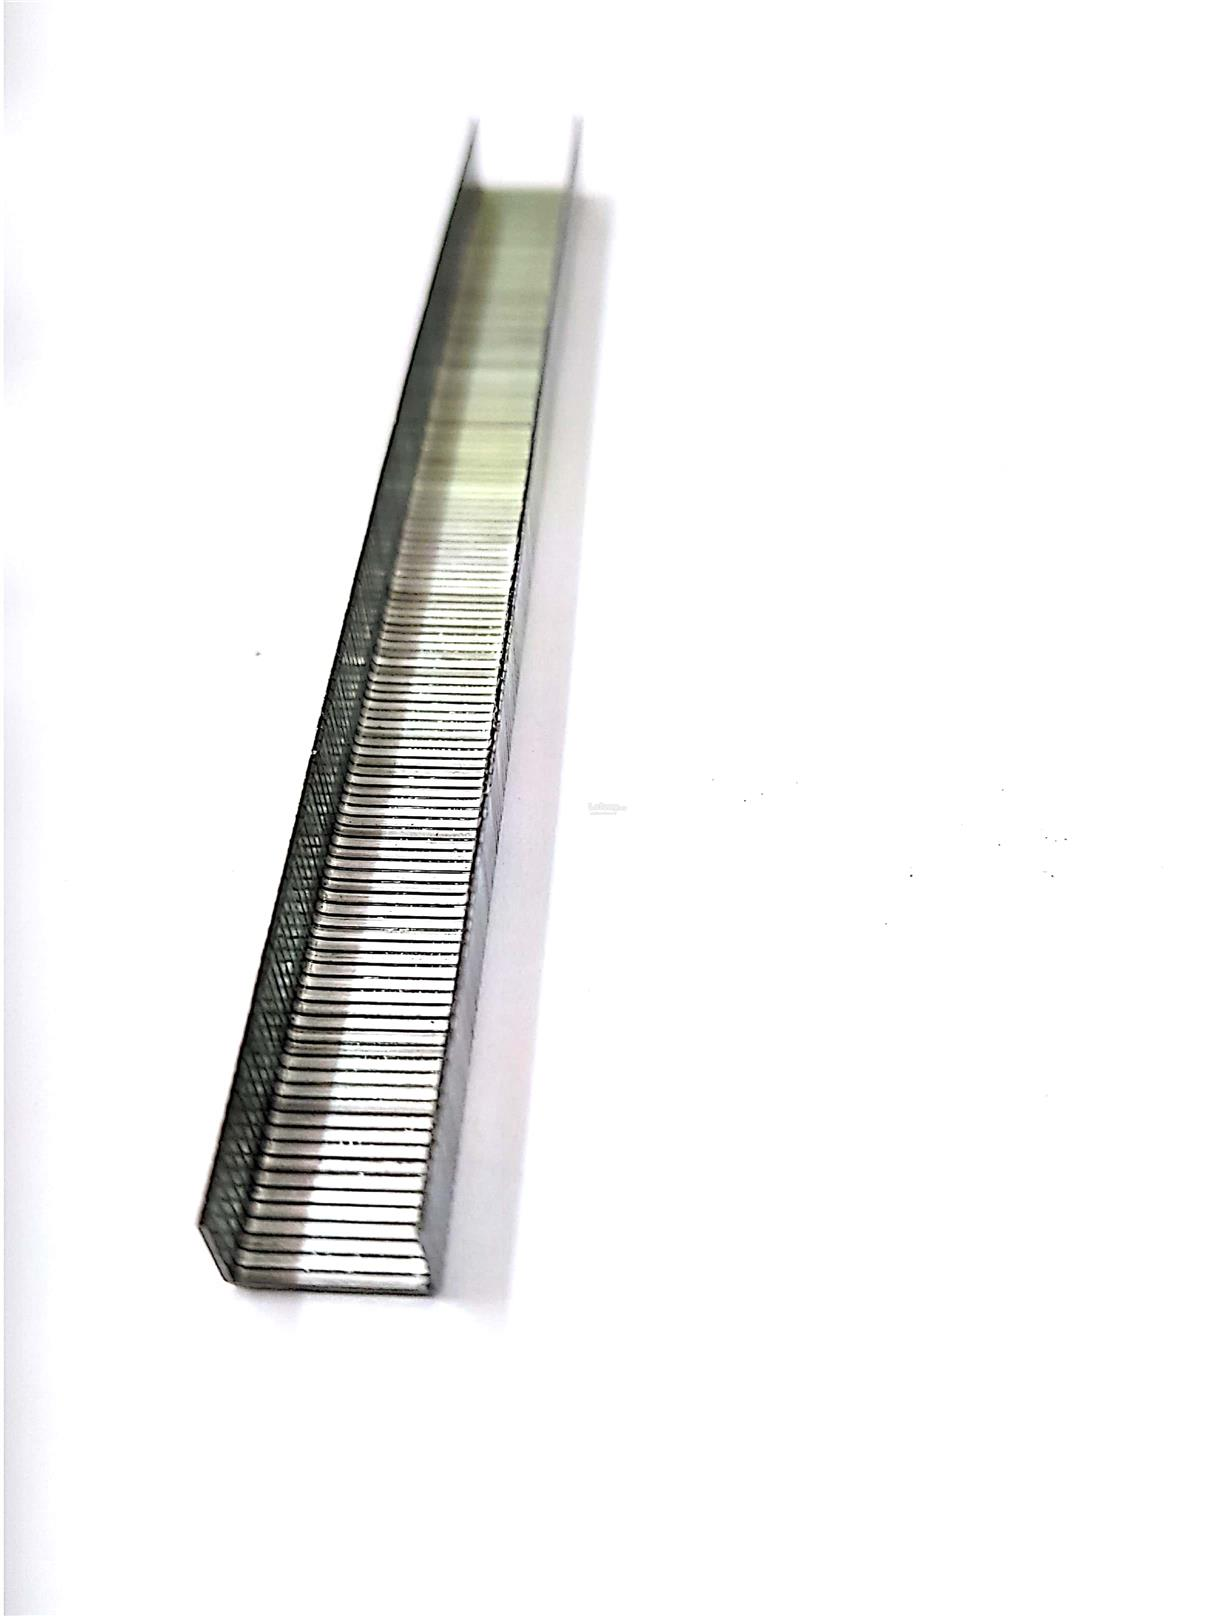 Sensui Staple pin 6mm